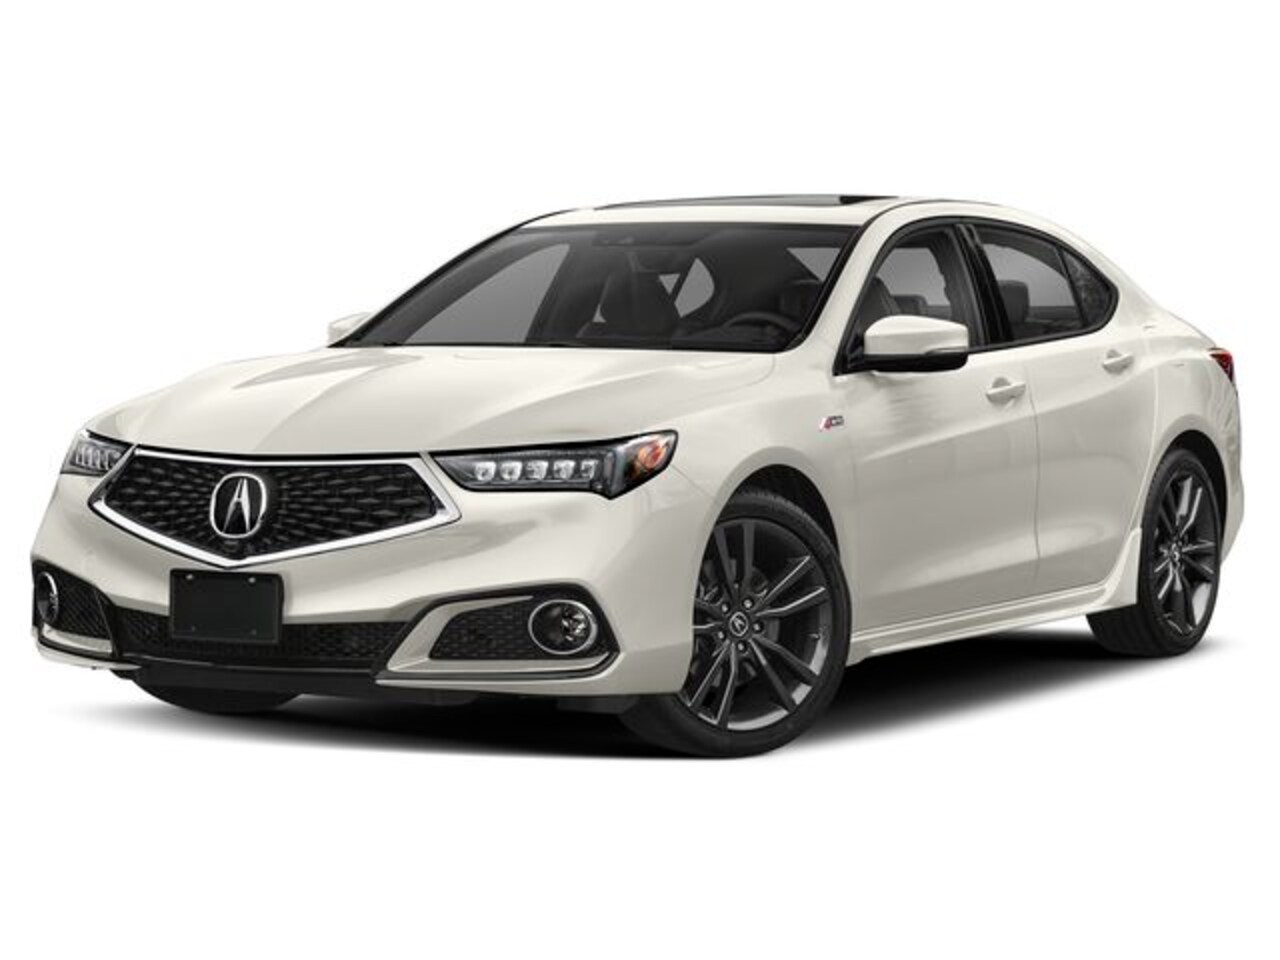 2019 Acura TLX Elite A-Spec w/Red Leather Interior Sedan